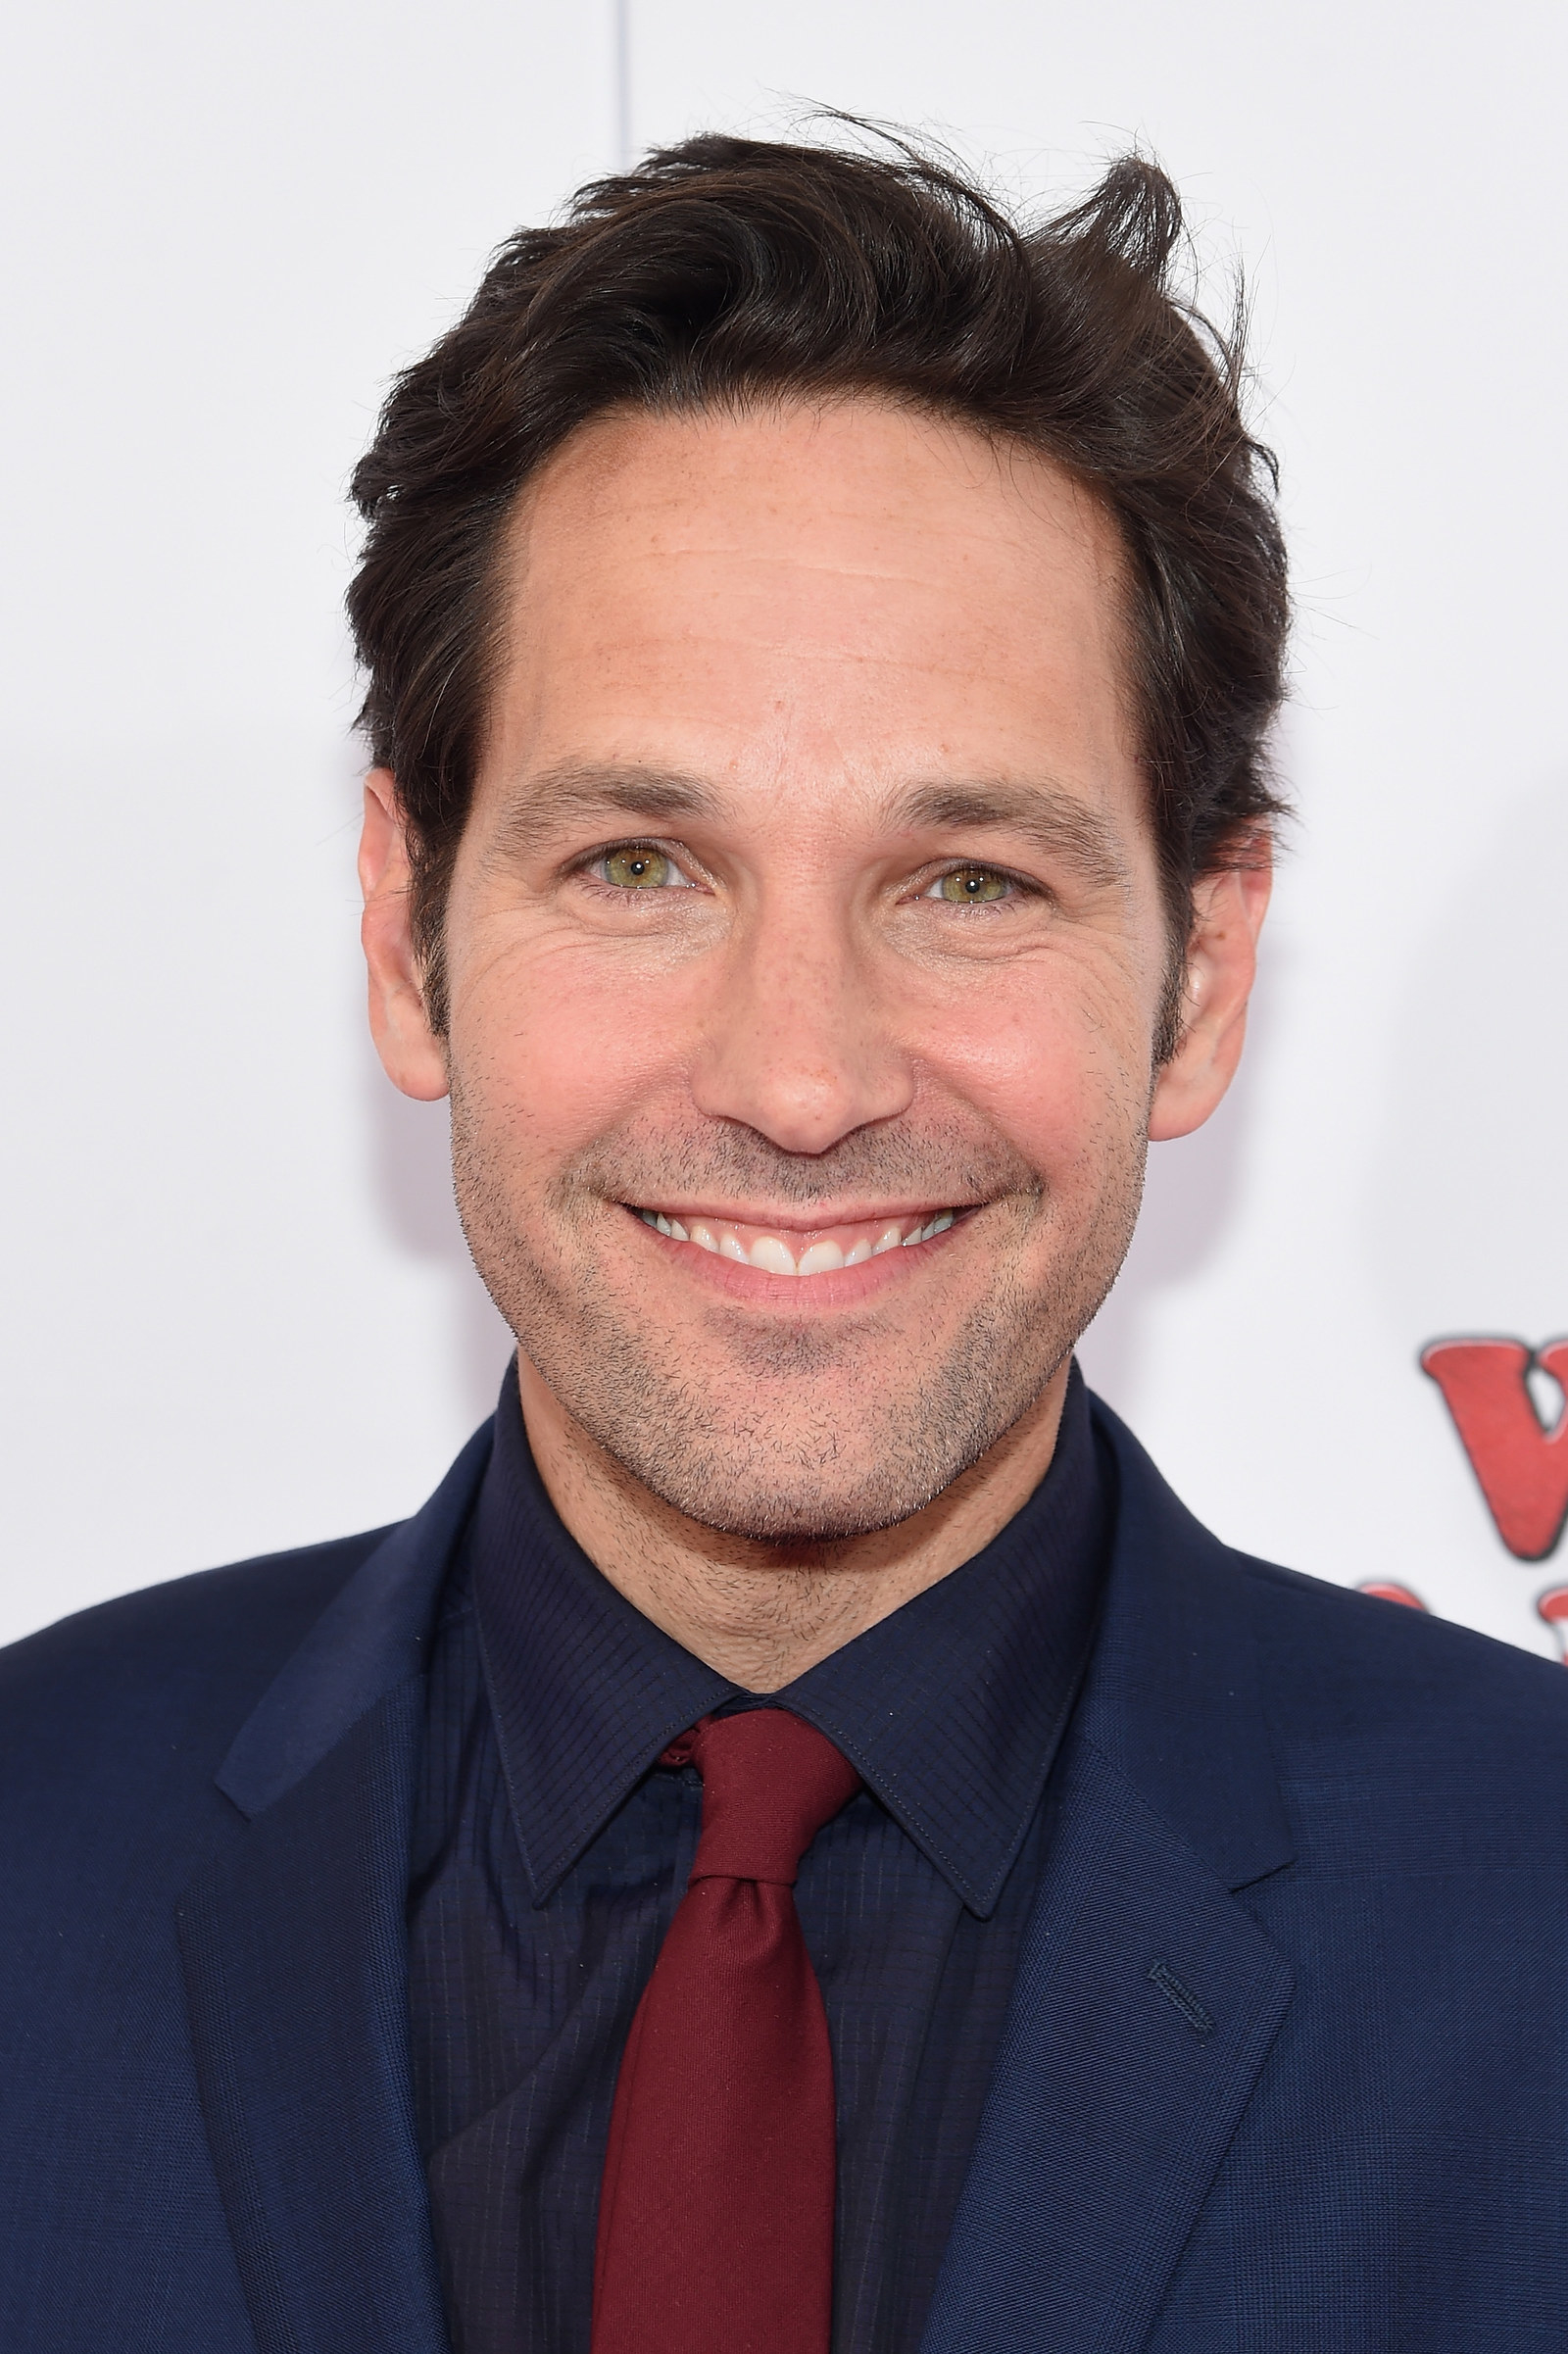 I Was Not Prepared For 2016 To Be Paul Rudd's Hottest Year ...